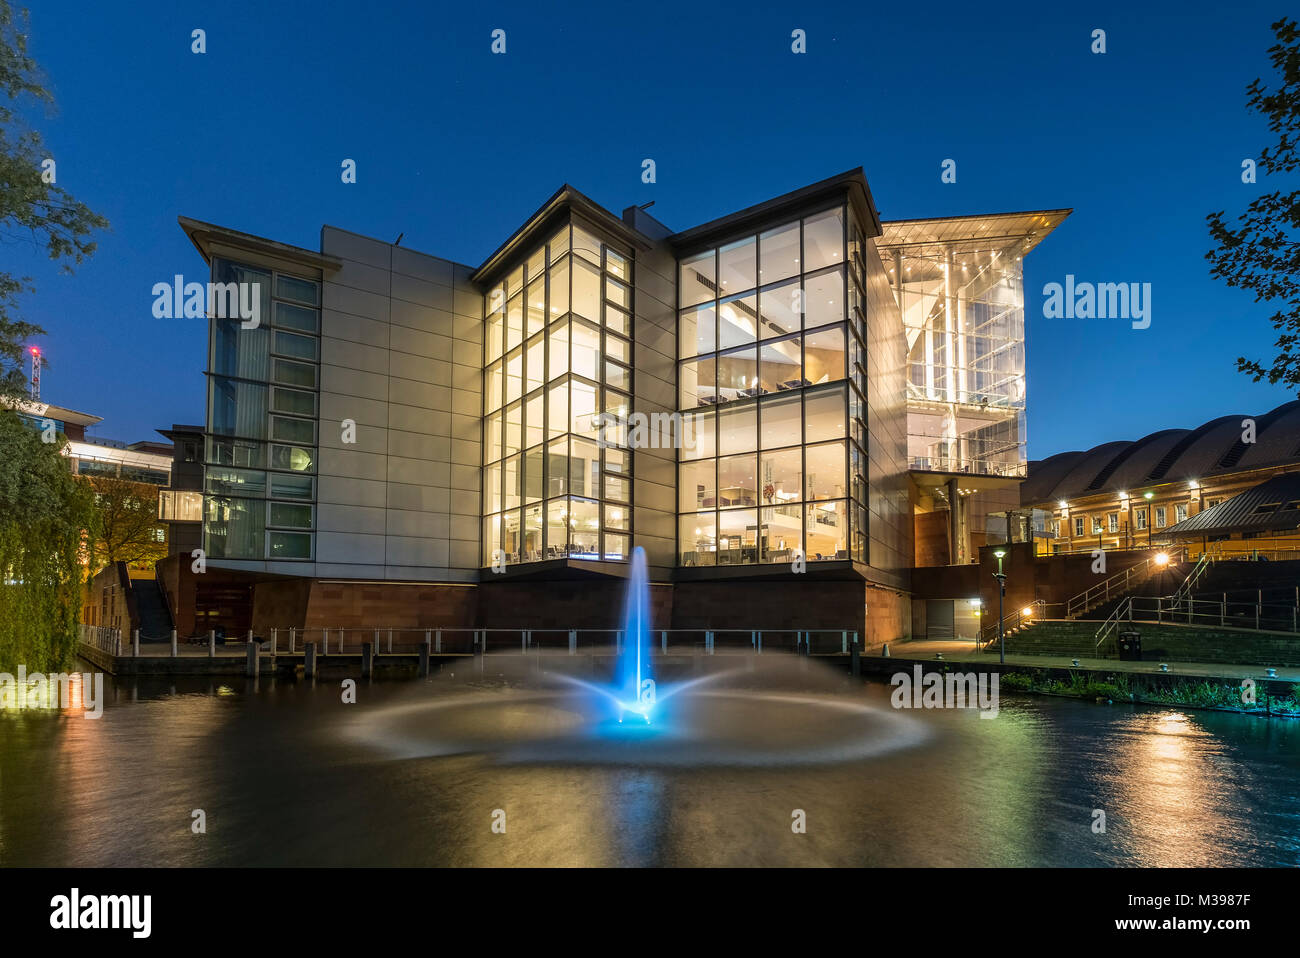 The Bridgewater Hall at night, Manchester, Greater Manchester, England, UK - Stock Image